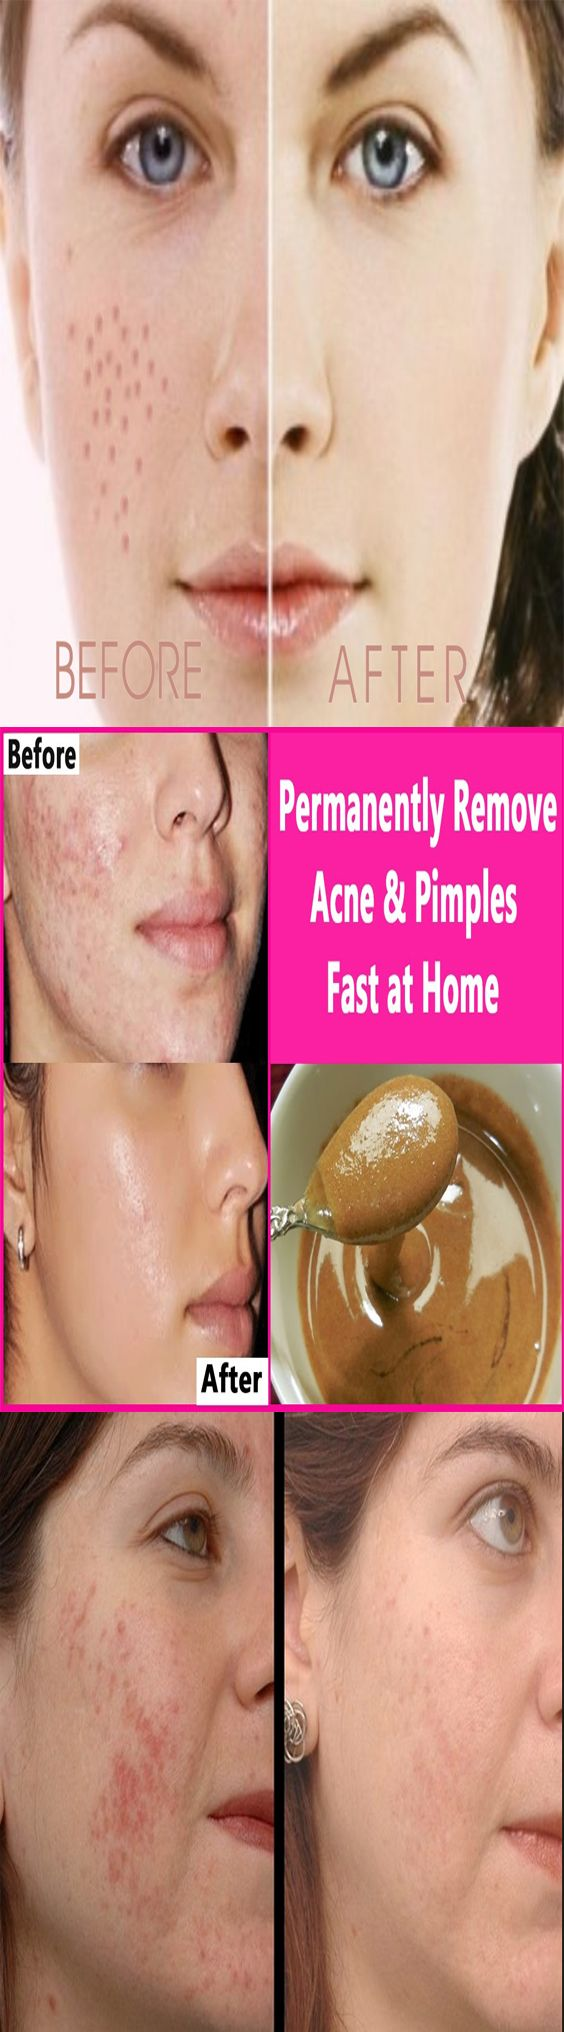 home remedies for pimples marks, how to remove pimples naturally, pimple treatment for oily skin, pimples on face treatment at home in hindi, how to remove pimples in one day, how to cure acne naturally in 3 days, how to remove pimples naturally and perma